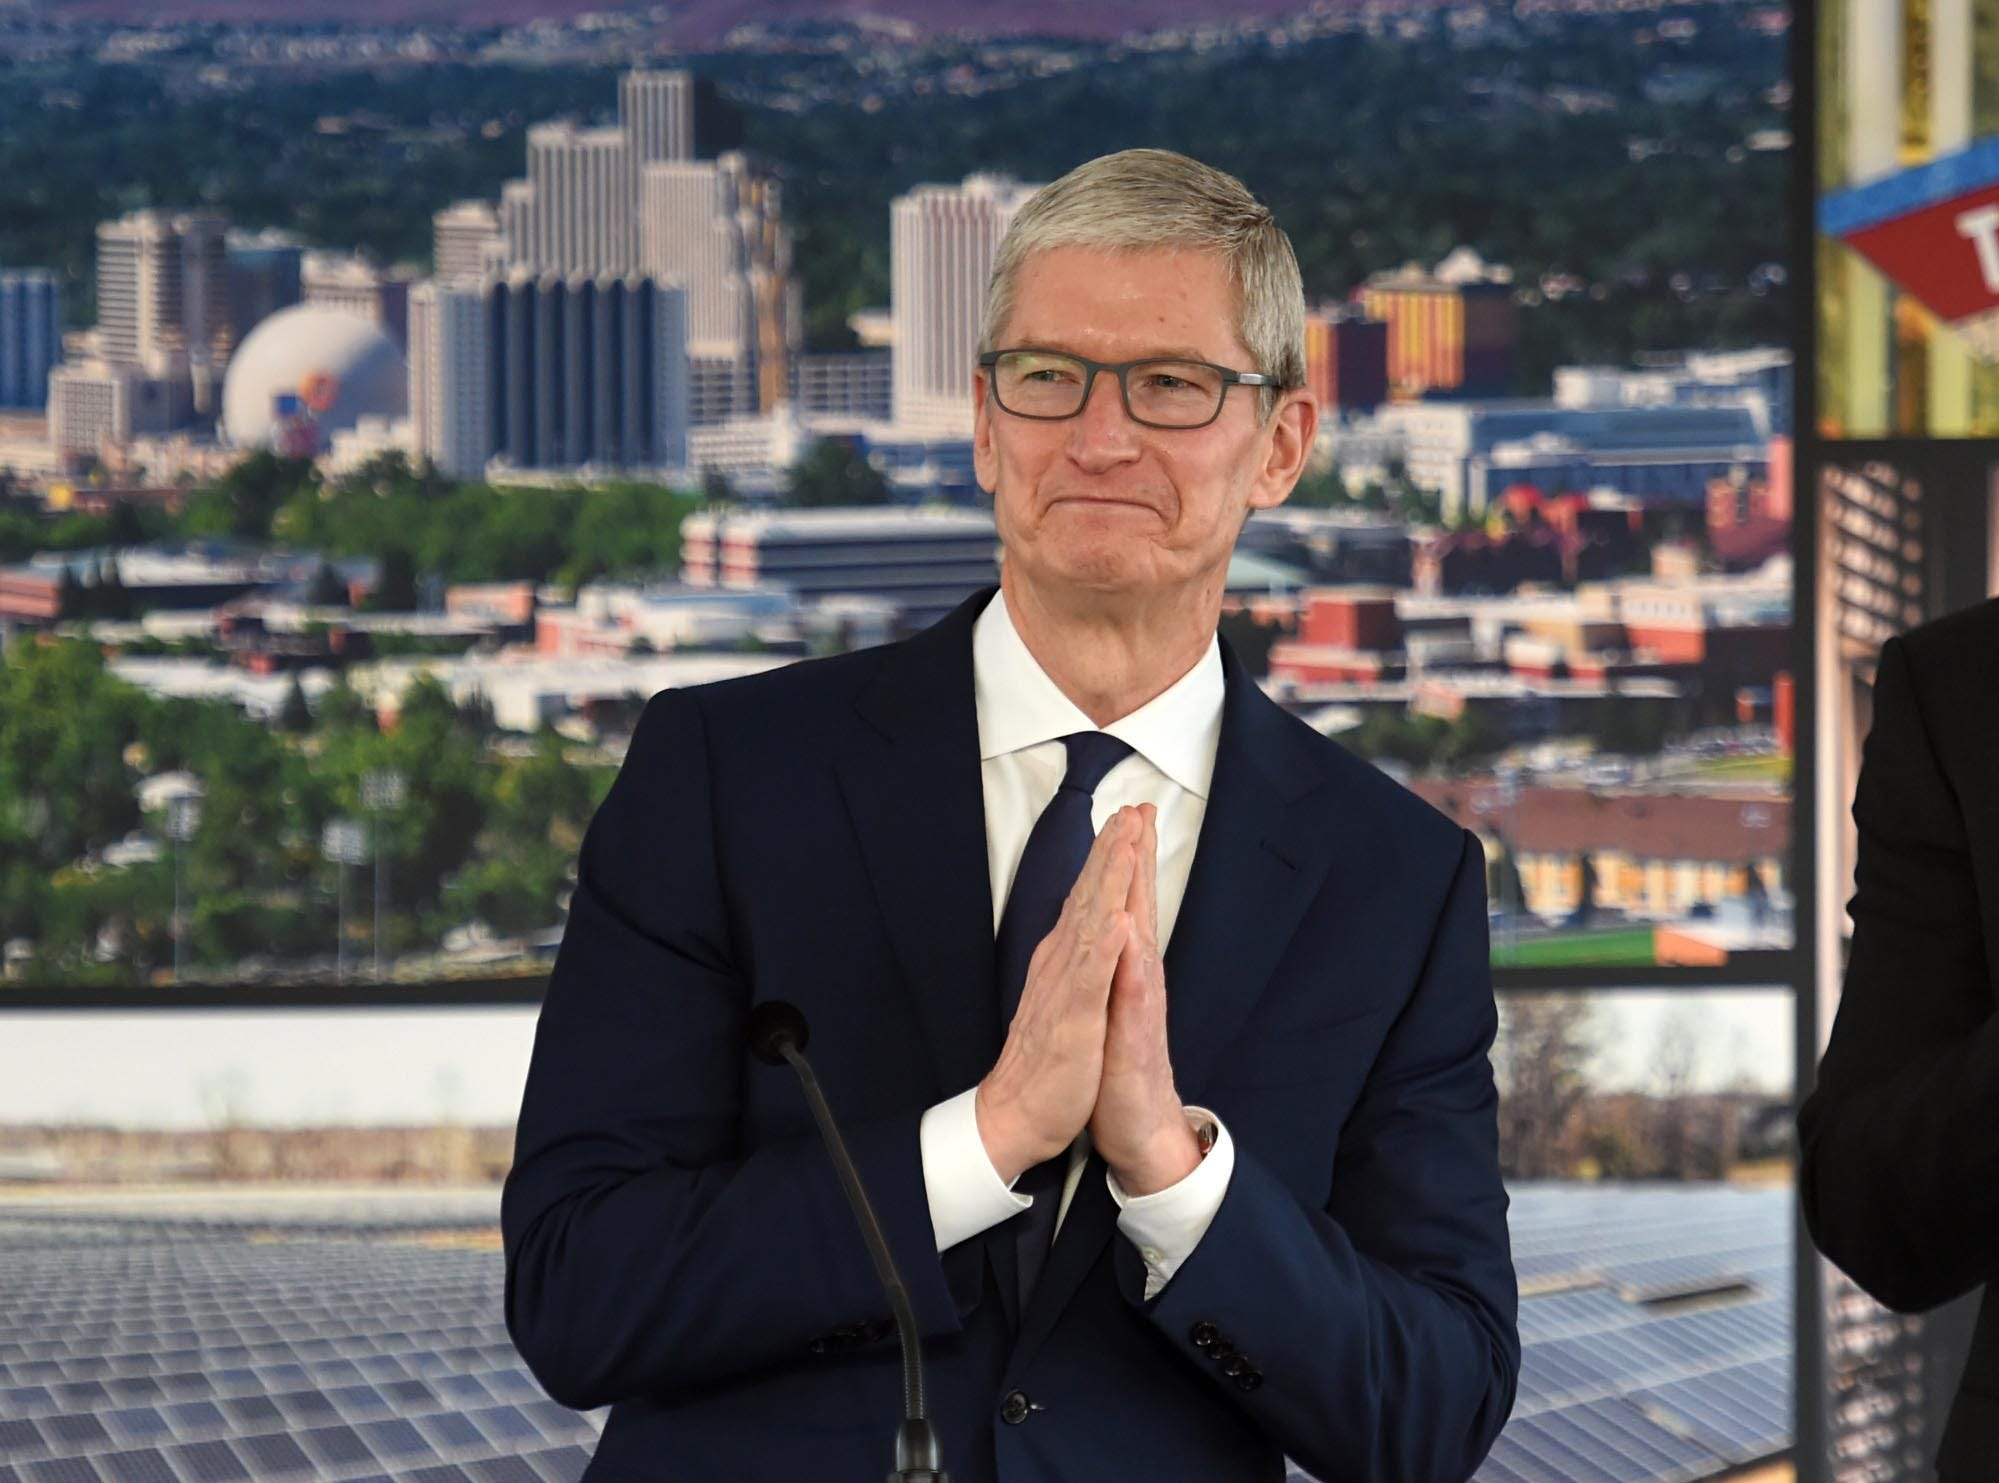 Apple completes downtown Reno warehouse, eyes data center and solar facility expansion